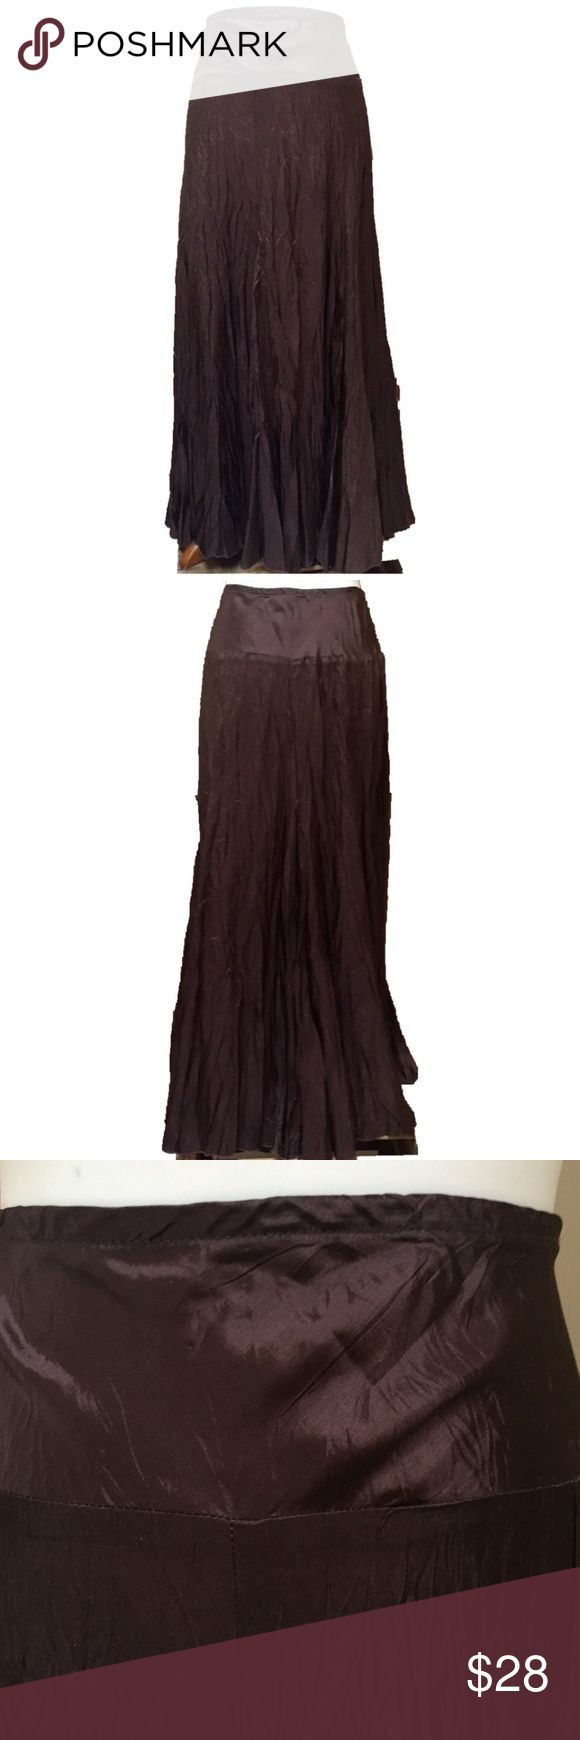 "NWT Karen Kane Brown Pull On Crinkle Maxi Skirt Chocolate brown crinkle fabric maxi skirt by Karen Kane is NWT. Pretty and comfortable. Can be casual with a t-shirt or dressed up with a tailored top. Great with flat or heels. Elastic waist. 100% acetate. Size L, measurements are flat and approximate: Waist: 15 1/2"" Length 37"" Karen Kane Skirts Maxi"